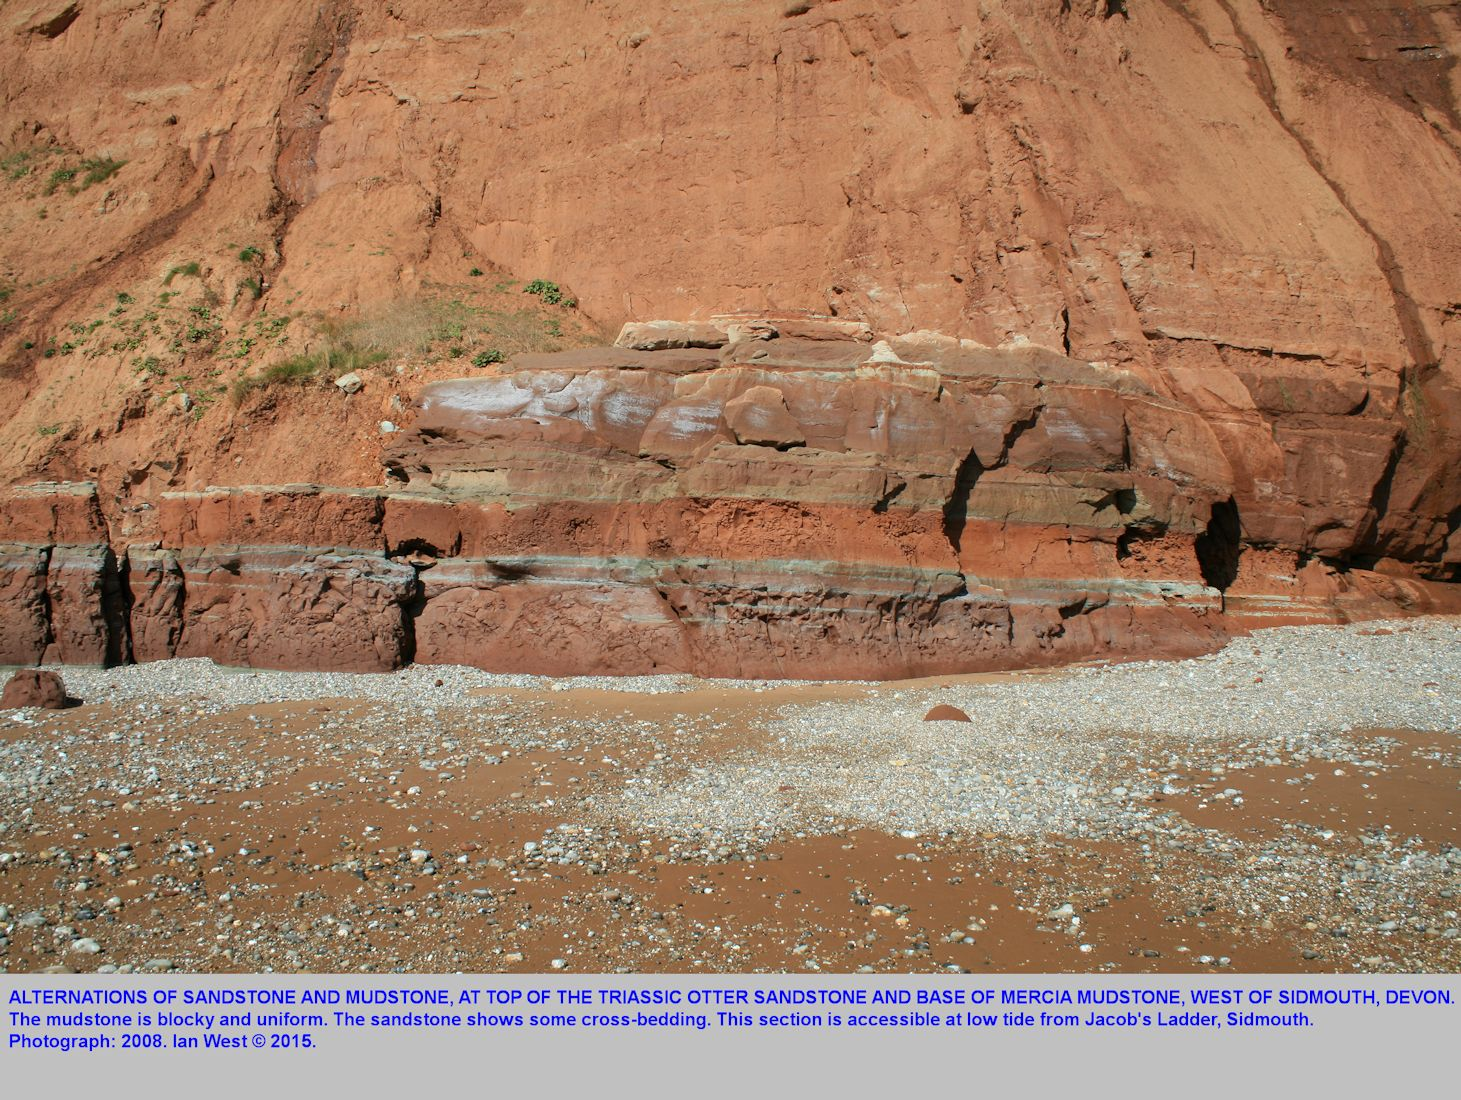 Alternations between sandstone and mudstone, approximate base of Mercia Mudstone and top of Otter Sandstone, west of Jacob's Ladder, Sidmouth, Devon